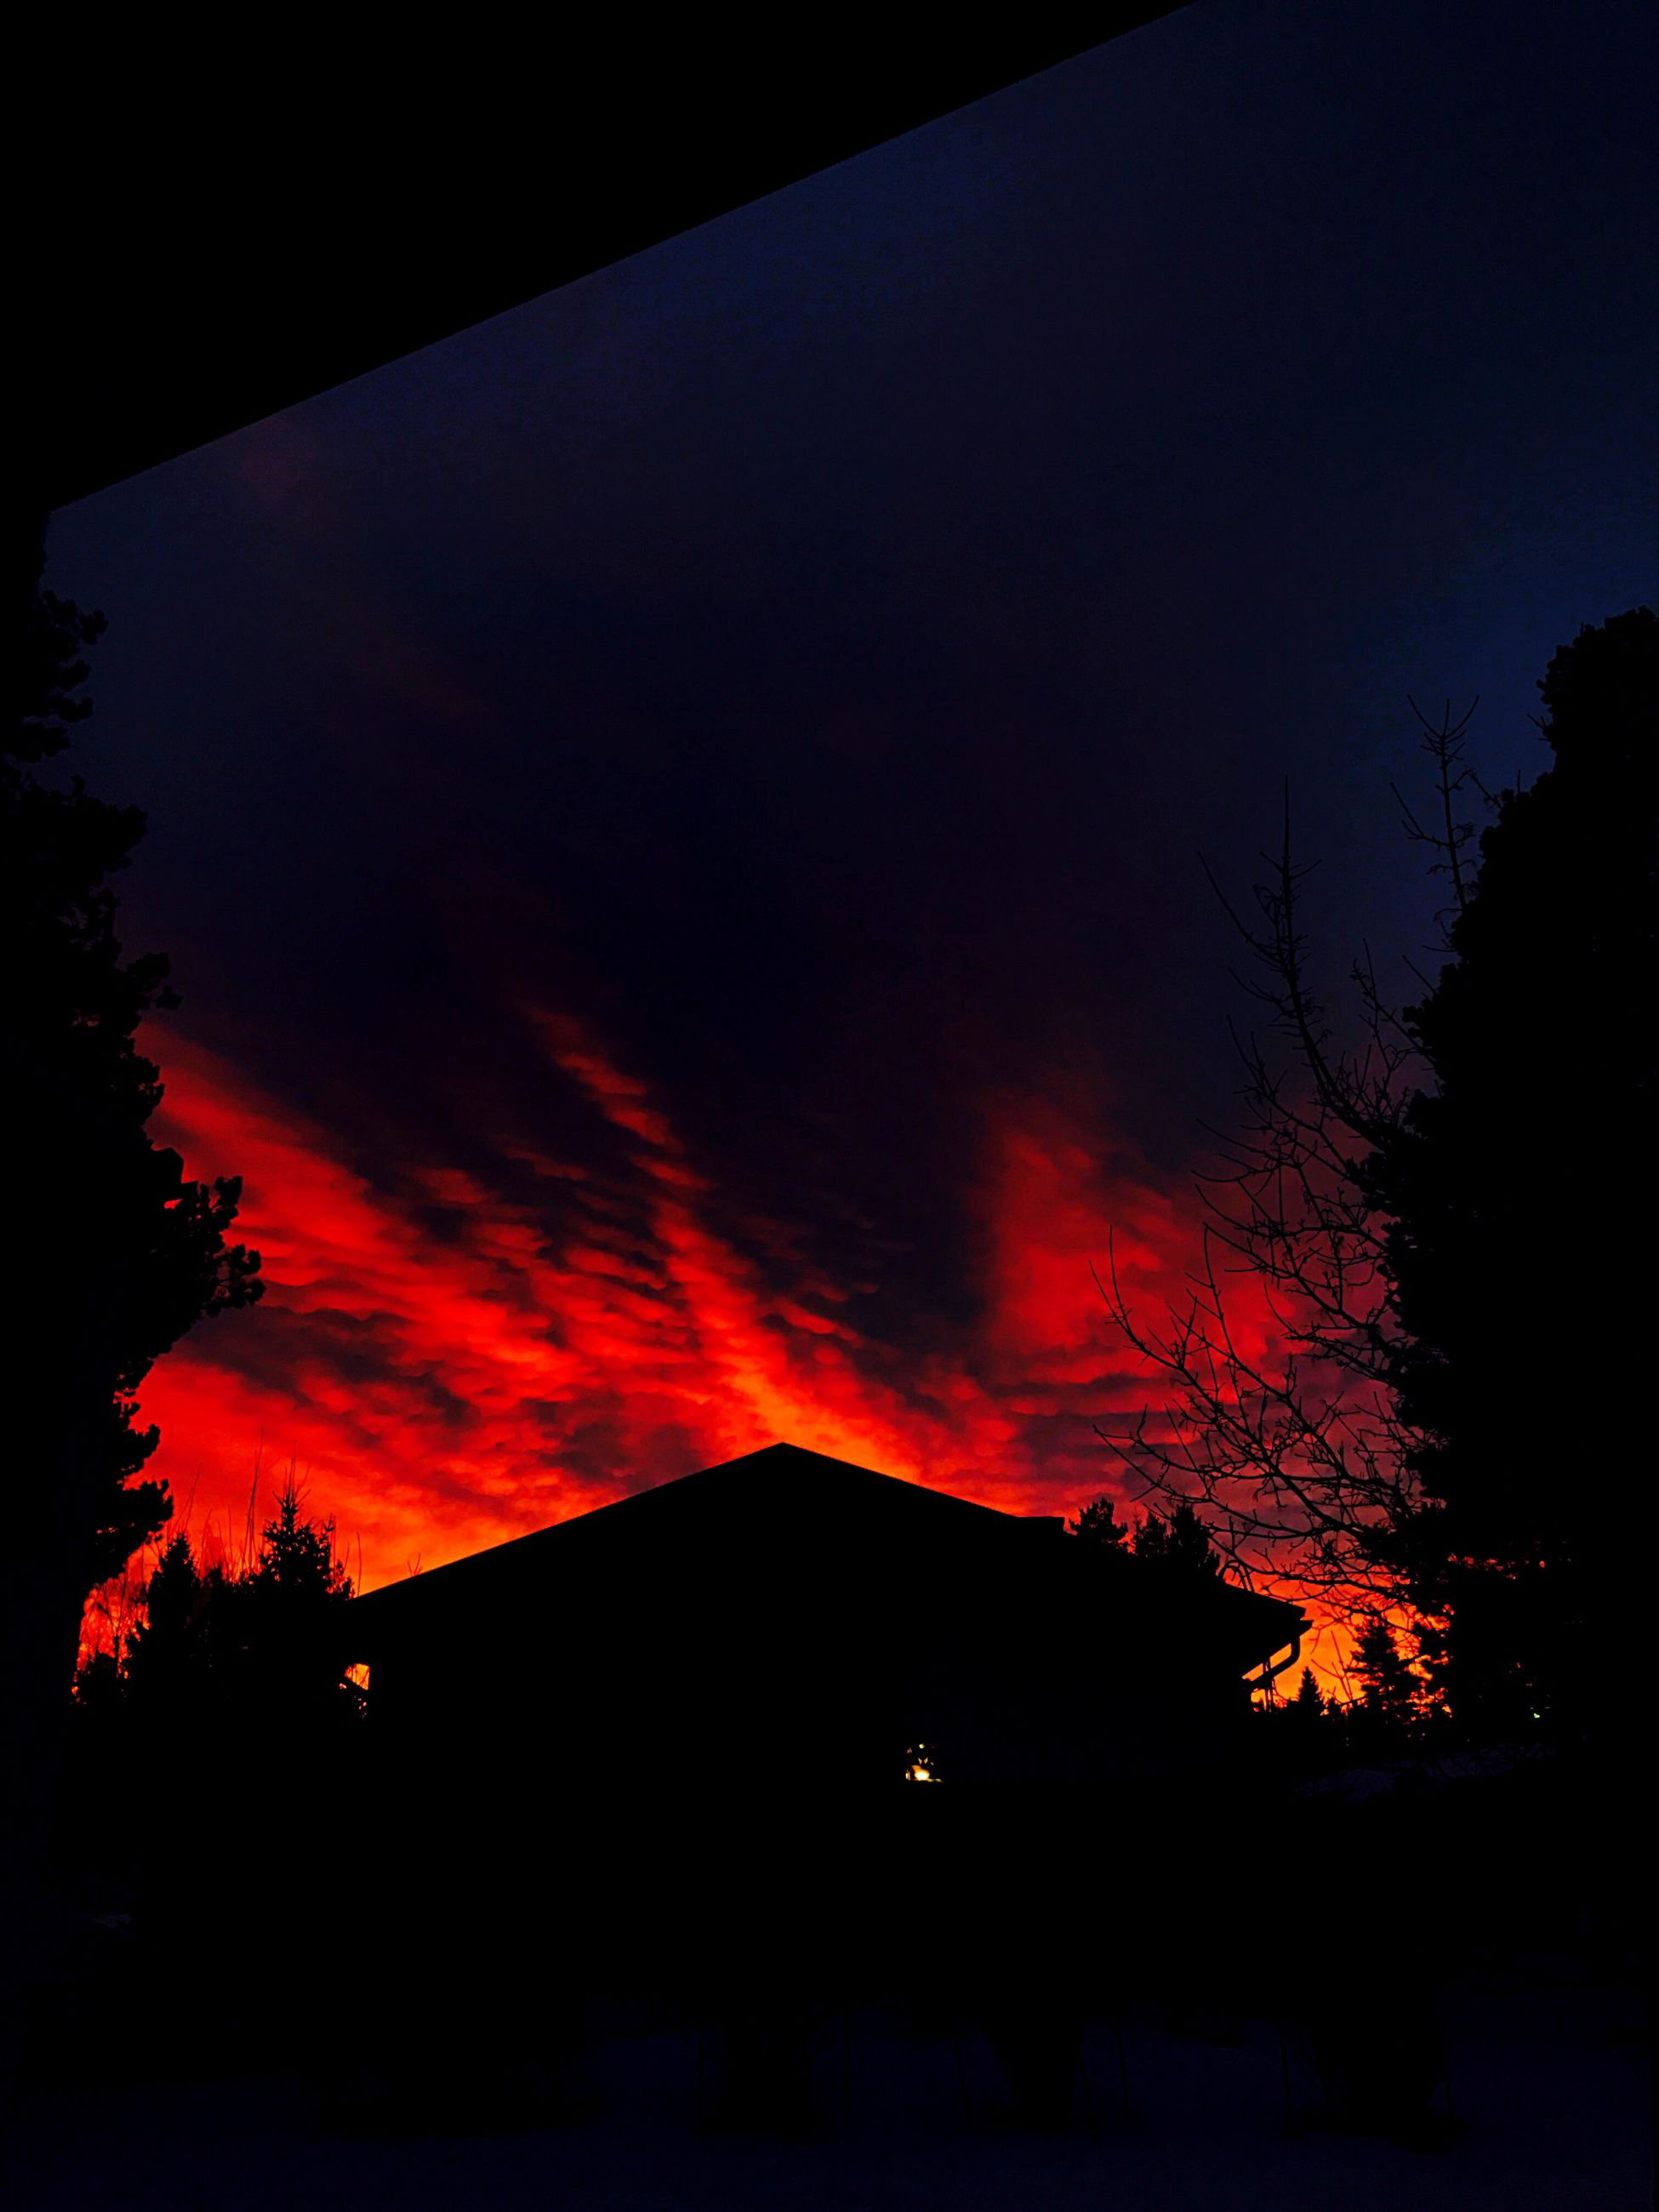 night, red, nature, silhouette, outdoors, no people, sky, tranquil scene, beauty in nature, lava, tree, erupting, forest fire, astronomy